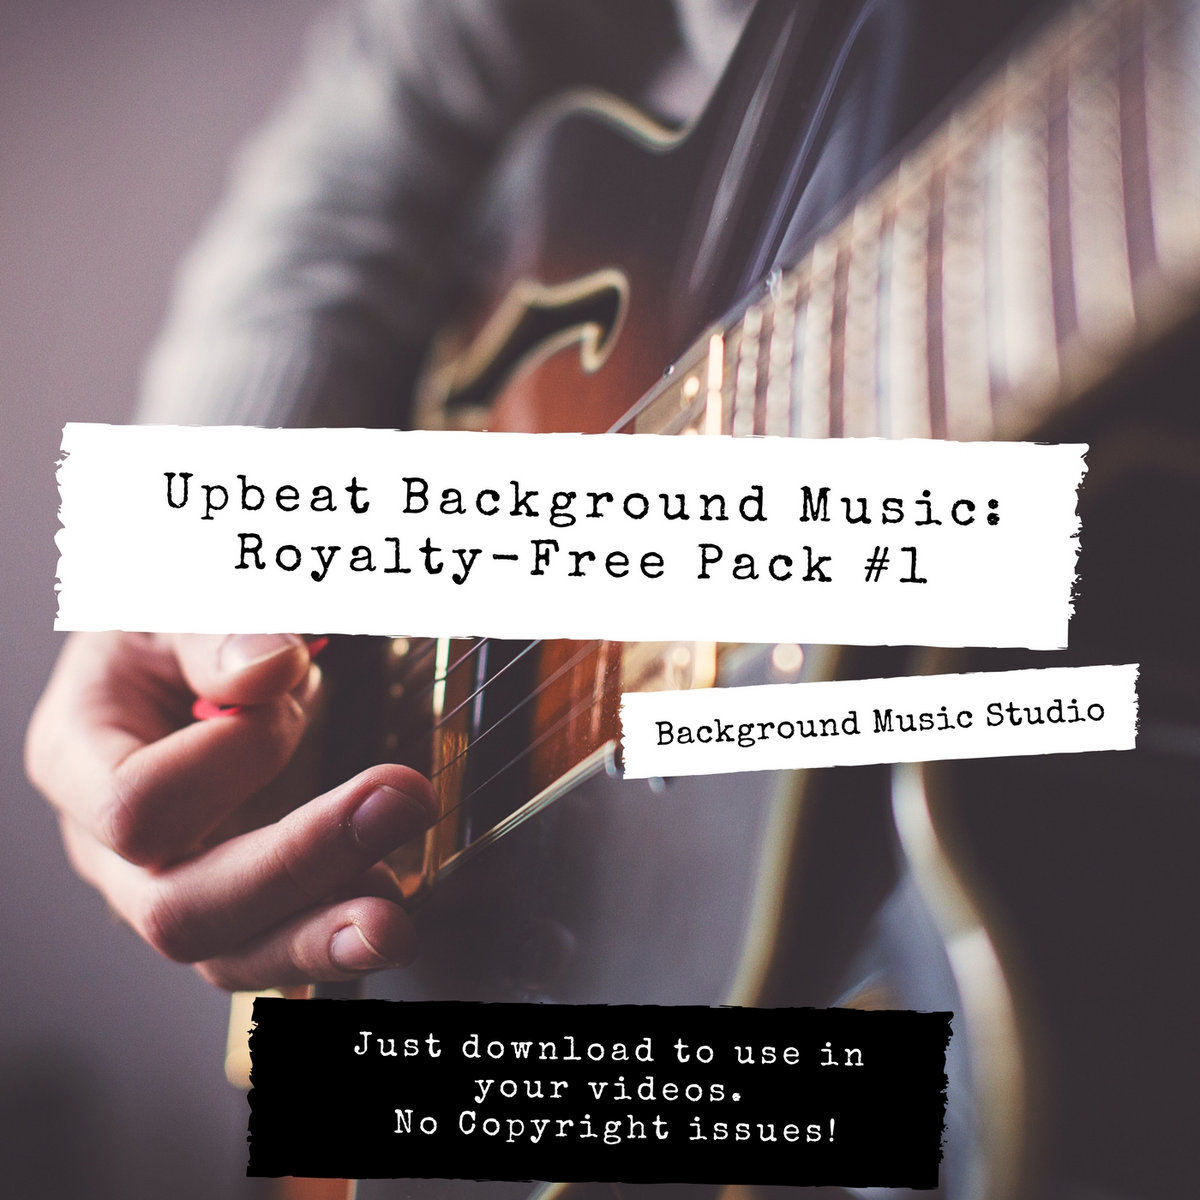 Upbeat Background Music: Royalty-Free Pack #1 | Background Music Studio